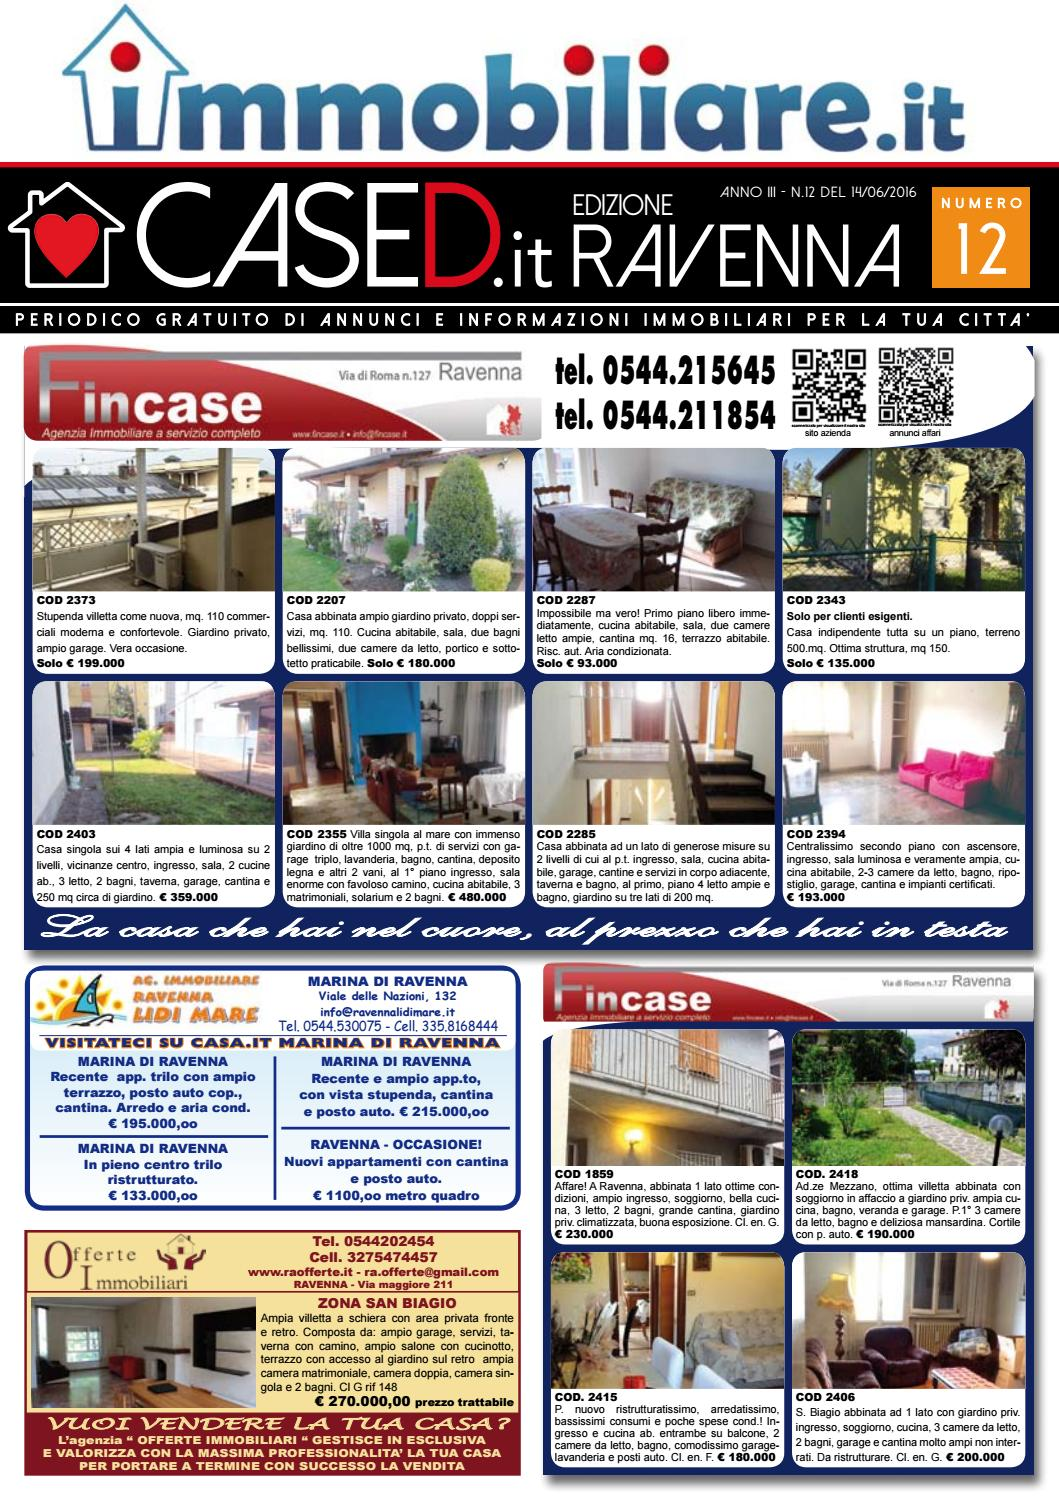 Camere Da Letto Ravenna.Cased Ravenna N 12 By Press One Srl Issuu